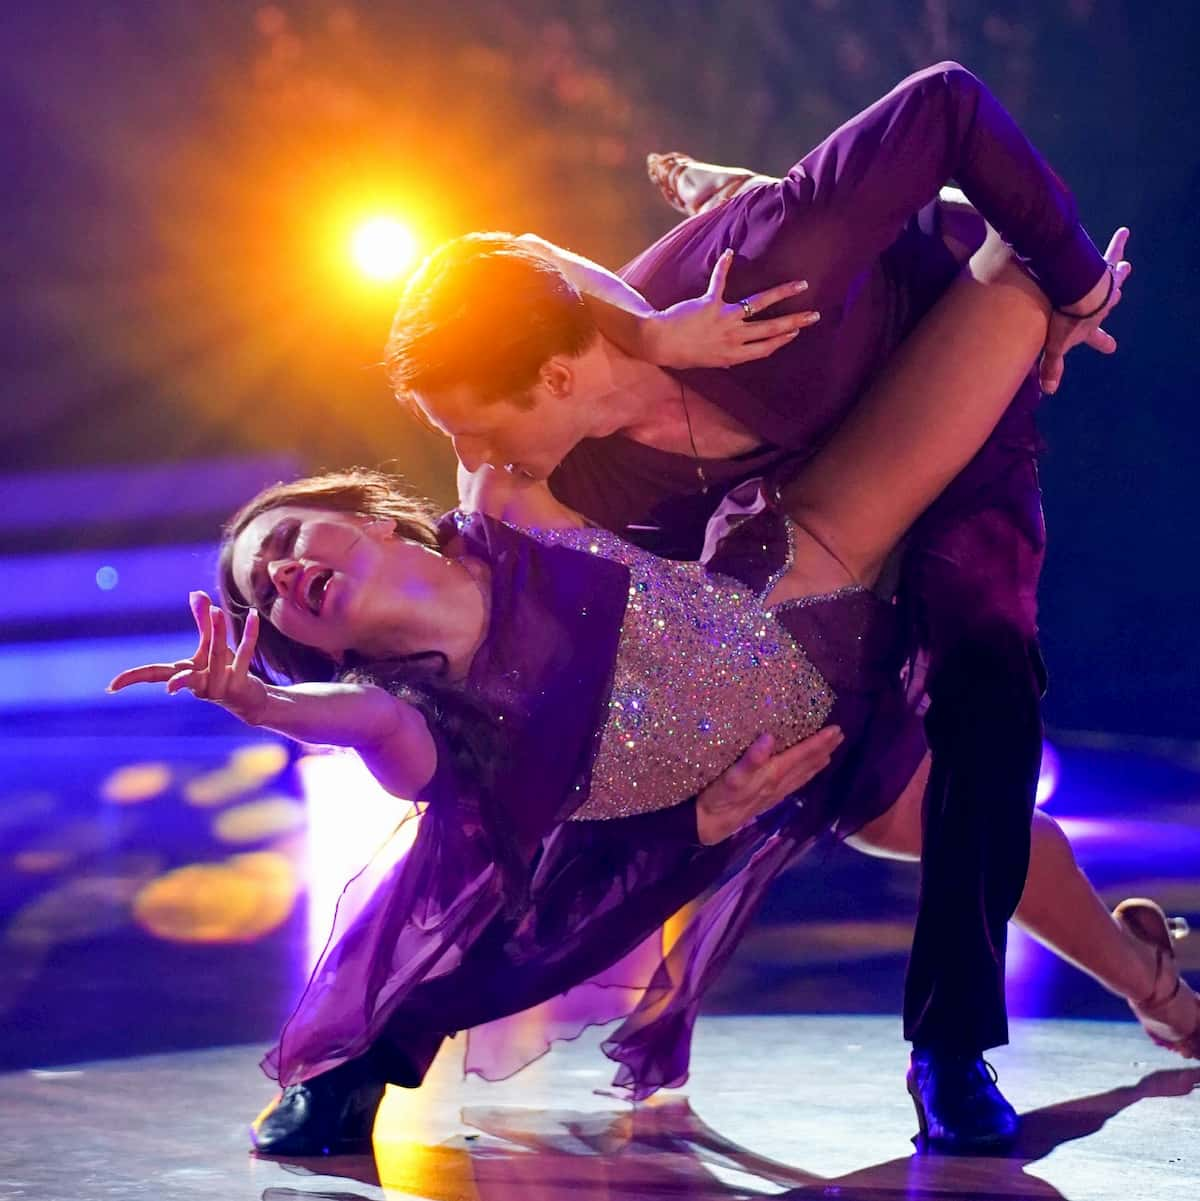 Moritz Hans - Renata Lusin in der Rumba im Finale Let's dance am 22.5.2020